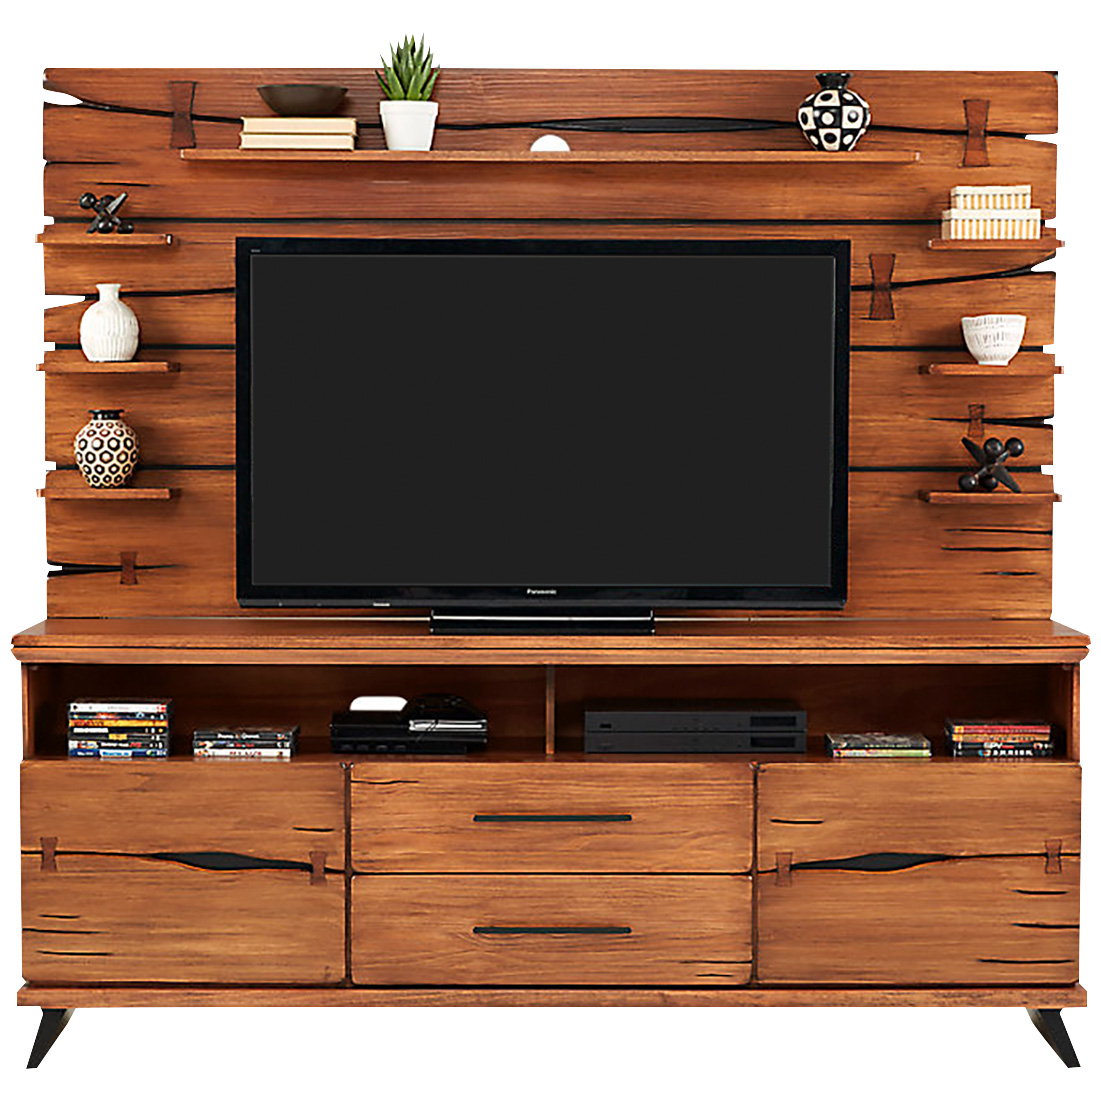 Rotta | Dana Point Rustic Brown 2 Piece Wall TV Stand